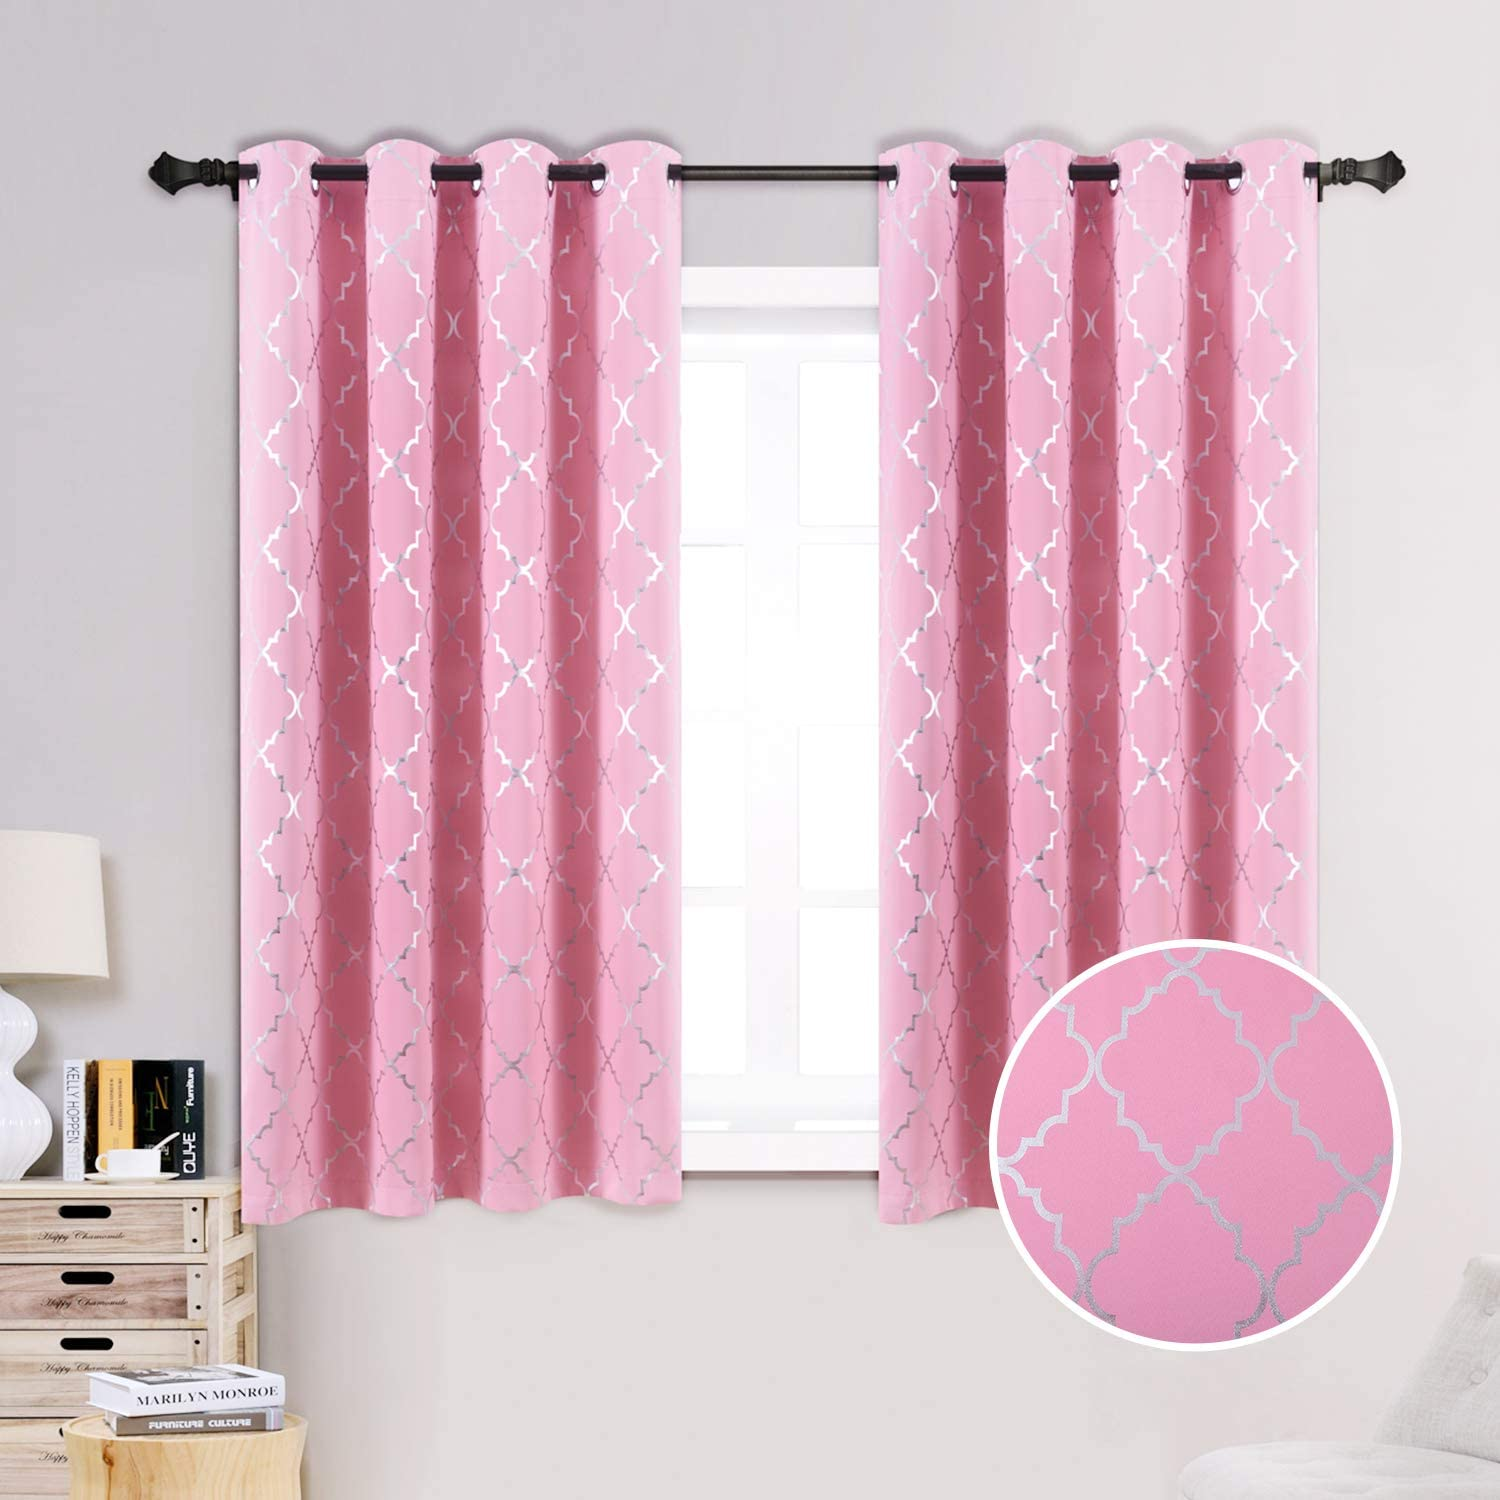 Anjee 63 Inch Blackout Curtains for Girls Room with Moroccan Pattern, Blackout Window Drapes with Grommet Top for Window Decor, 52 x 63 Inches, Pink